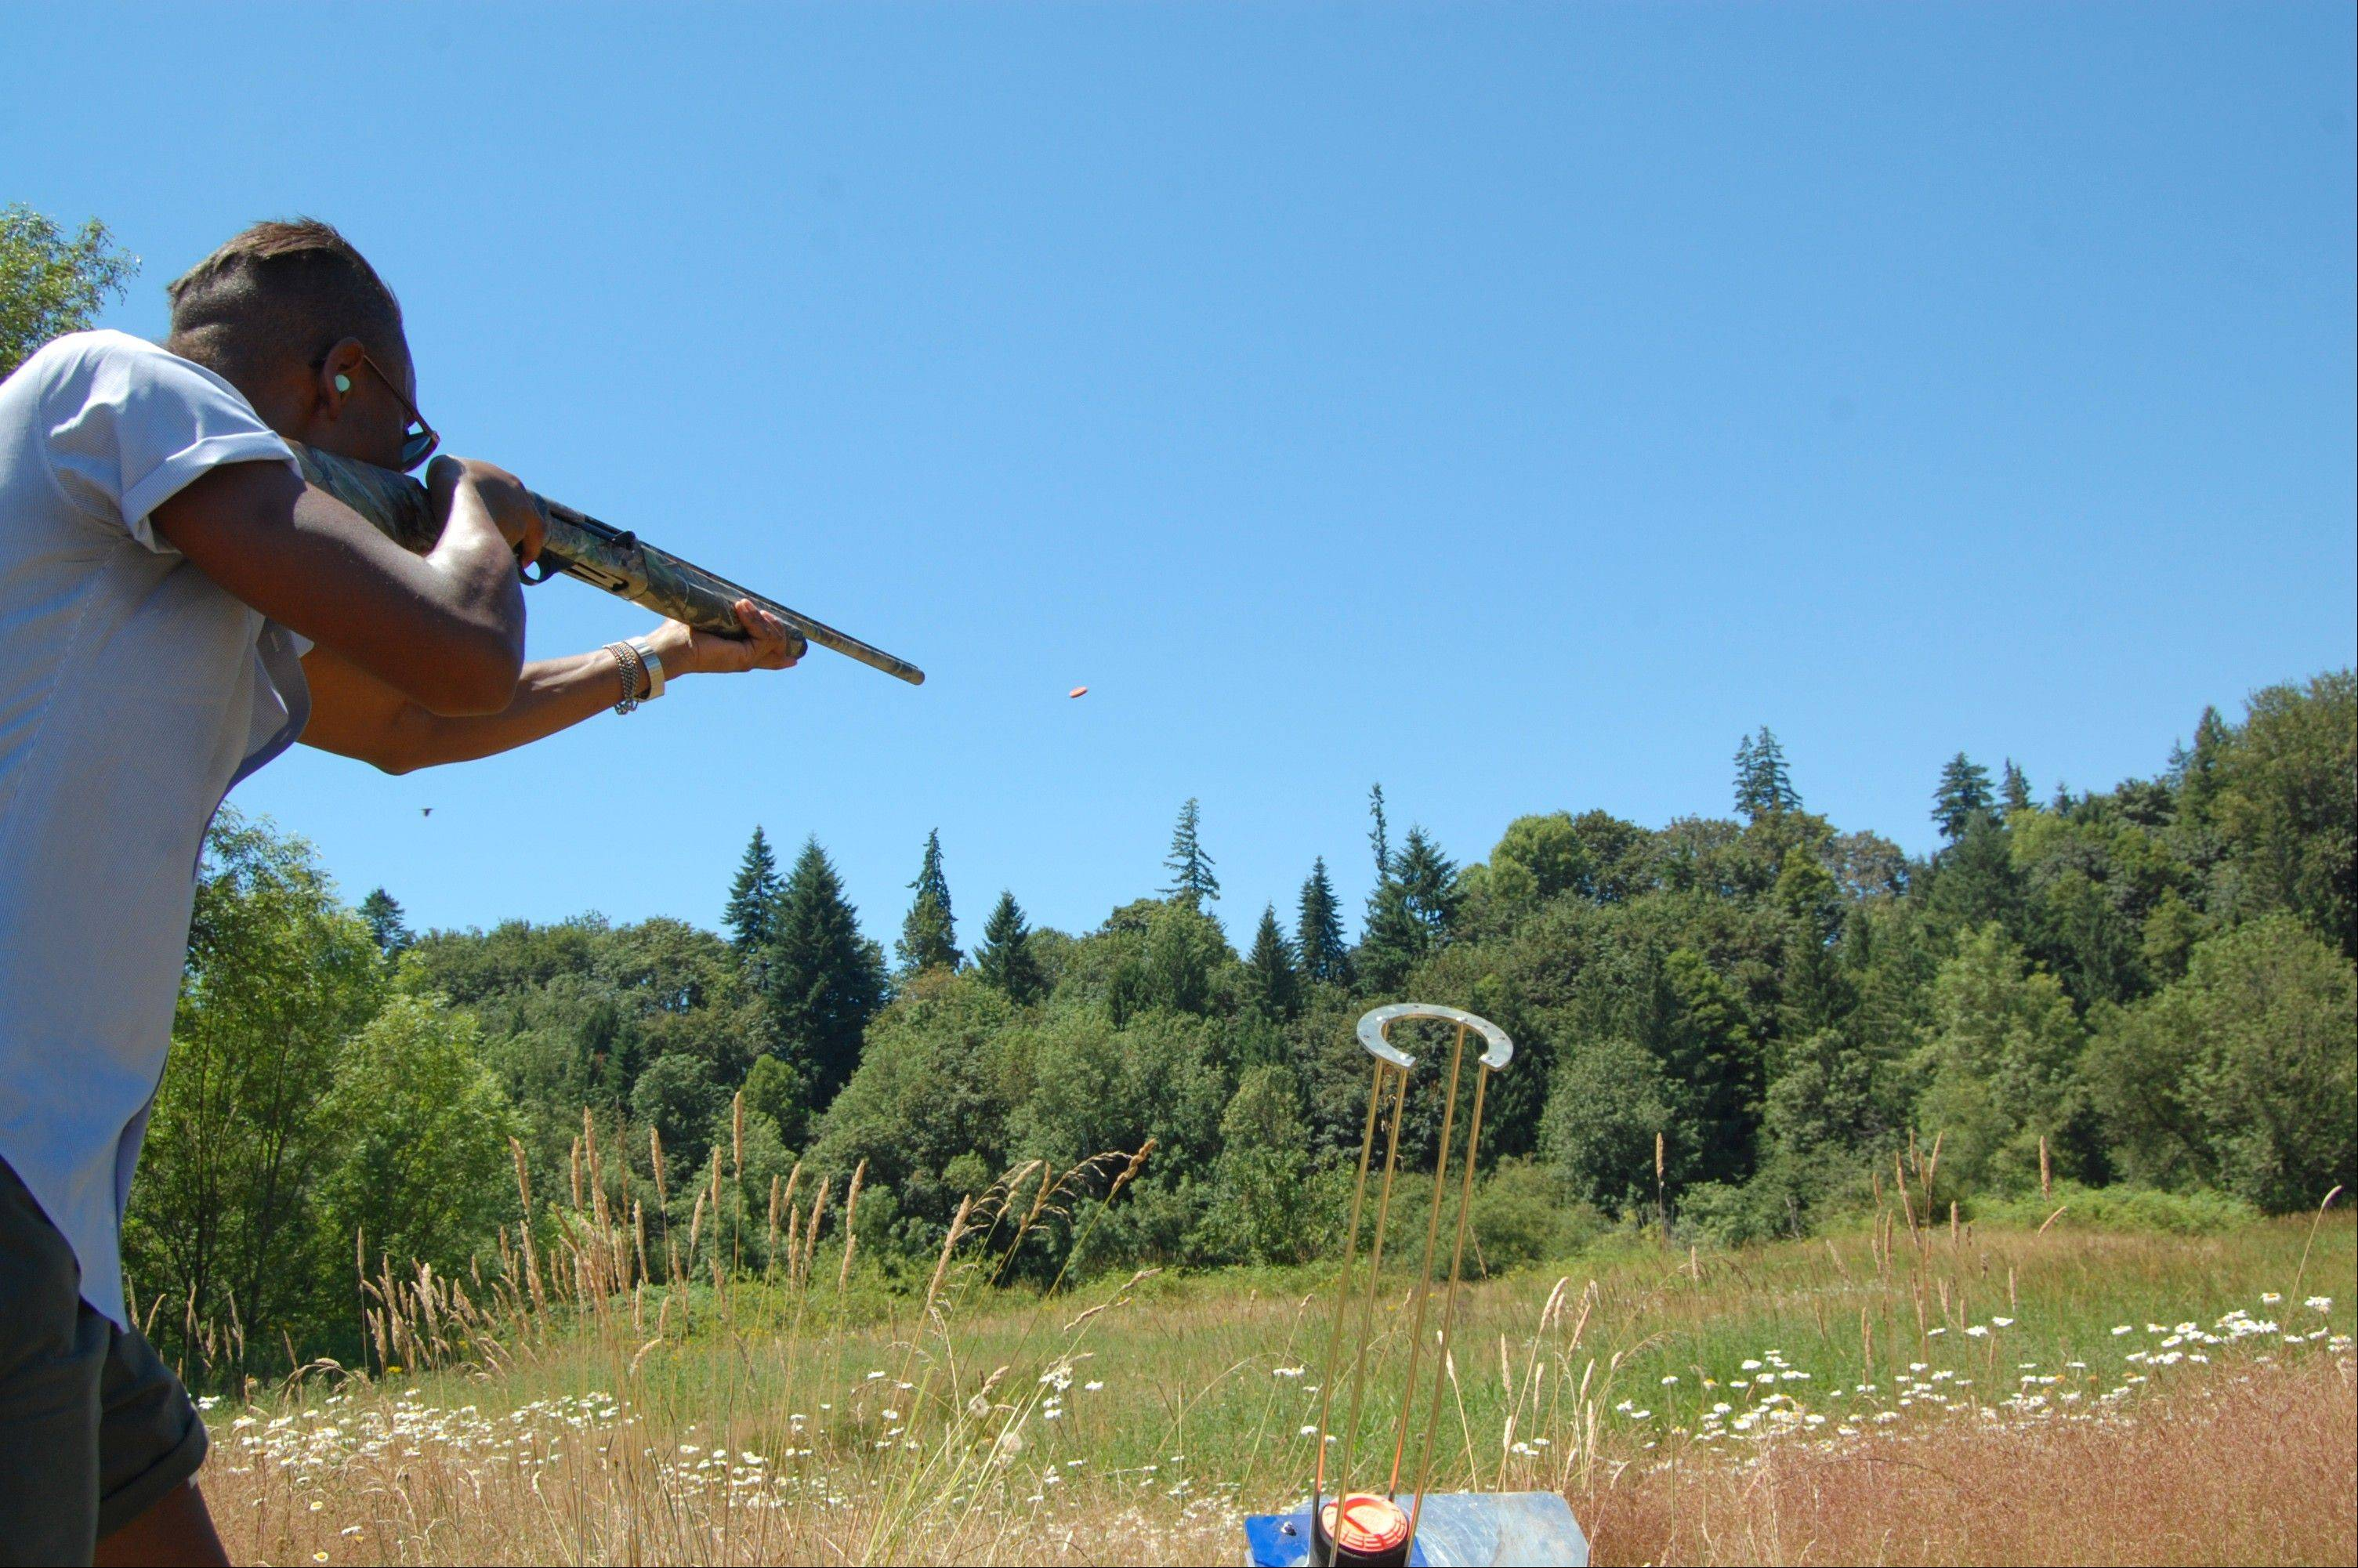 Chef Gregory Gourdet of Portland, Ore., restaurant Departure, fires a .20-gauge shotgun during firearms training near Canby, Ore. Recently, some of Portland's top chefs received training in the use of shotguns, muzzleloaders and archery gear at a 30-acre farm owned by Nicky USA, which sells and butchers game animals raised on the farm for chefs across the country.